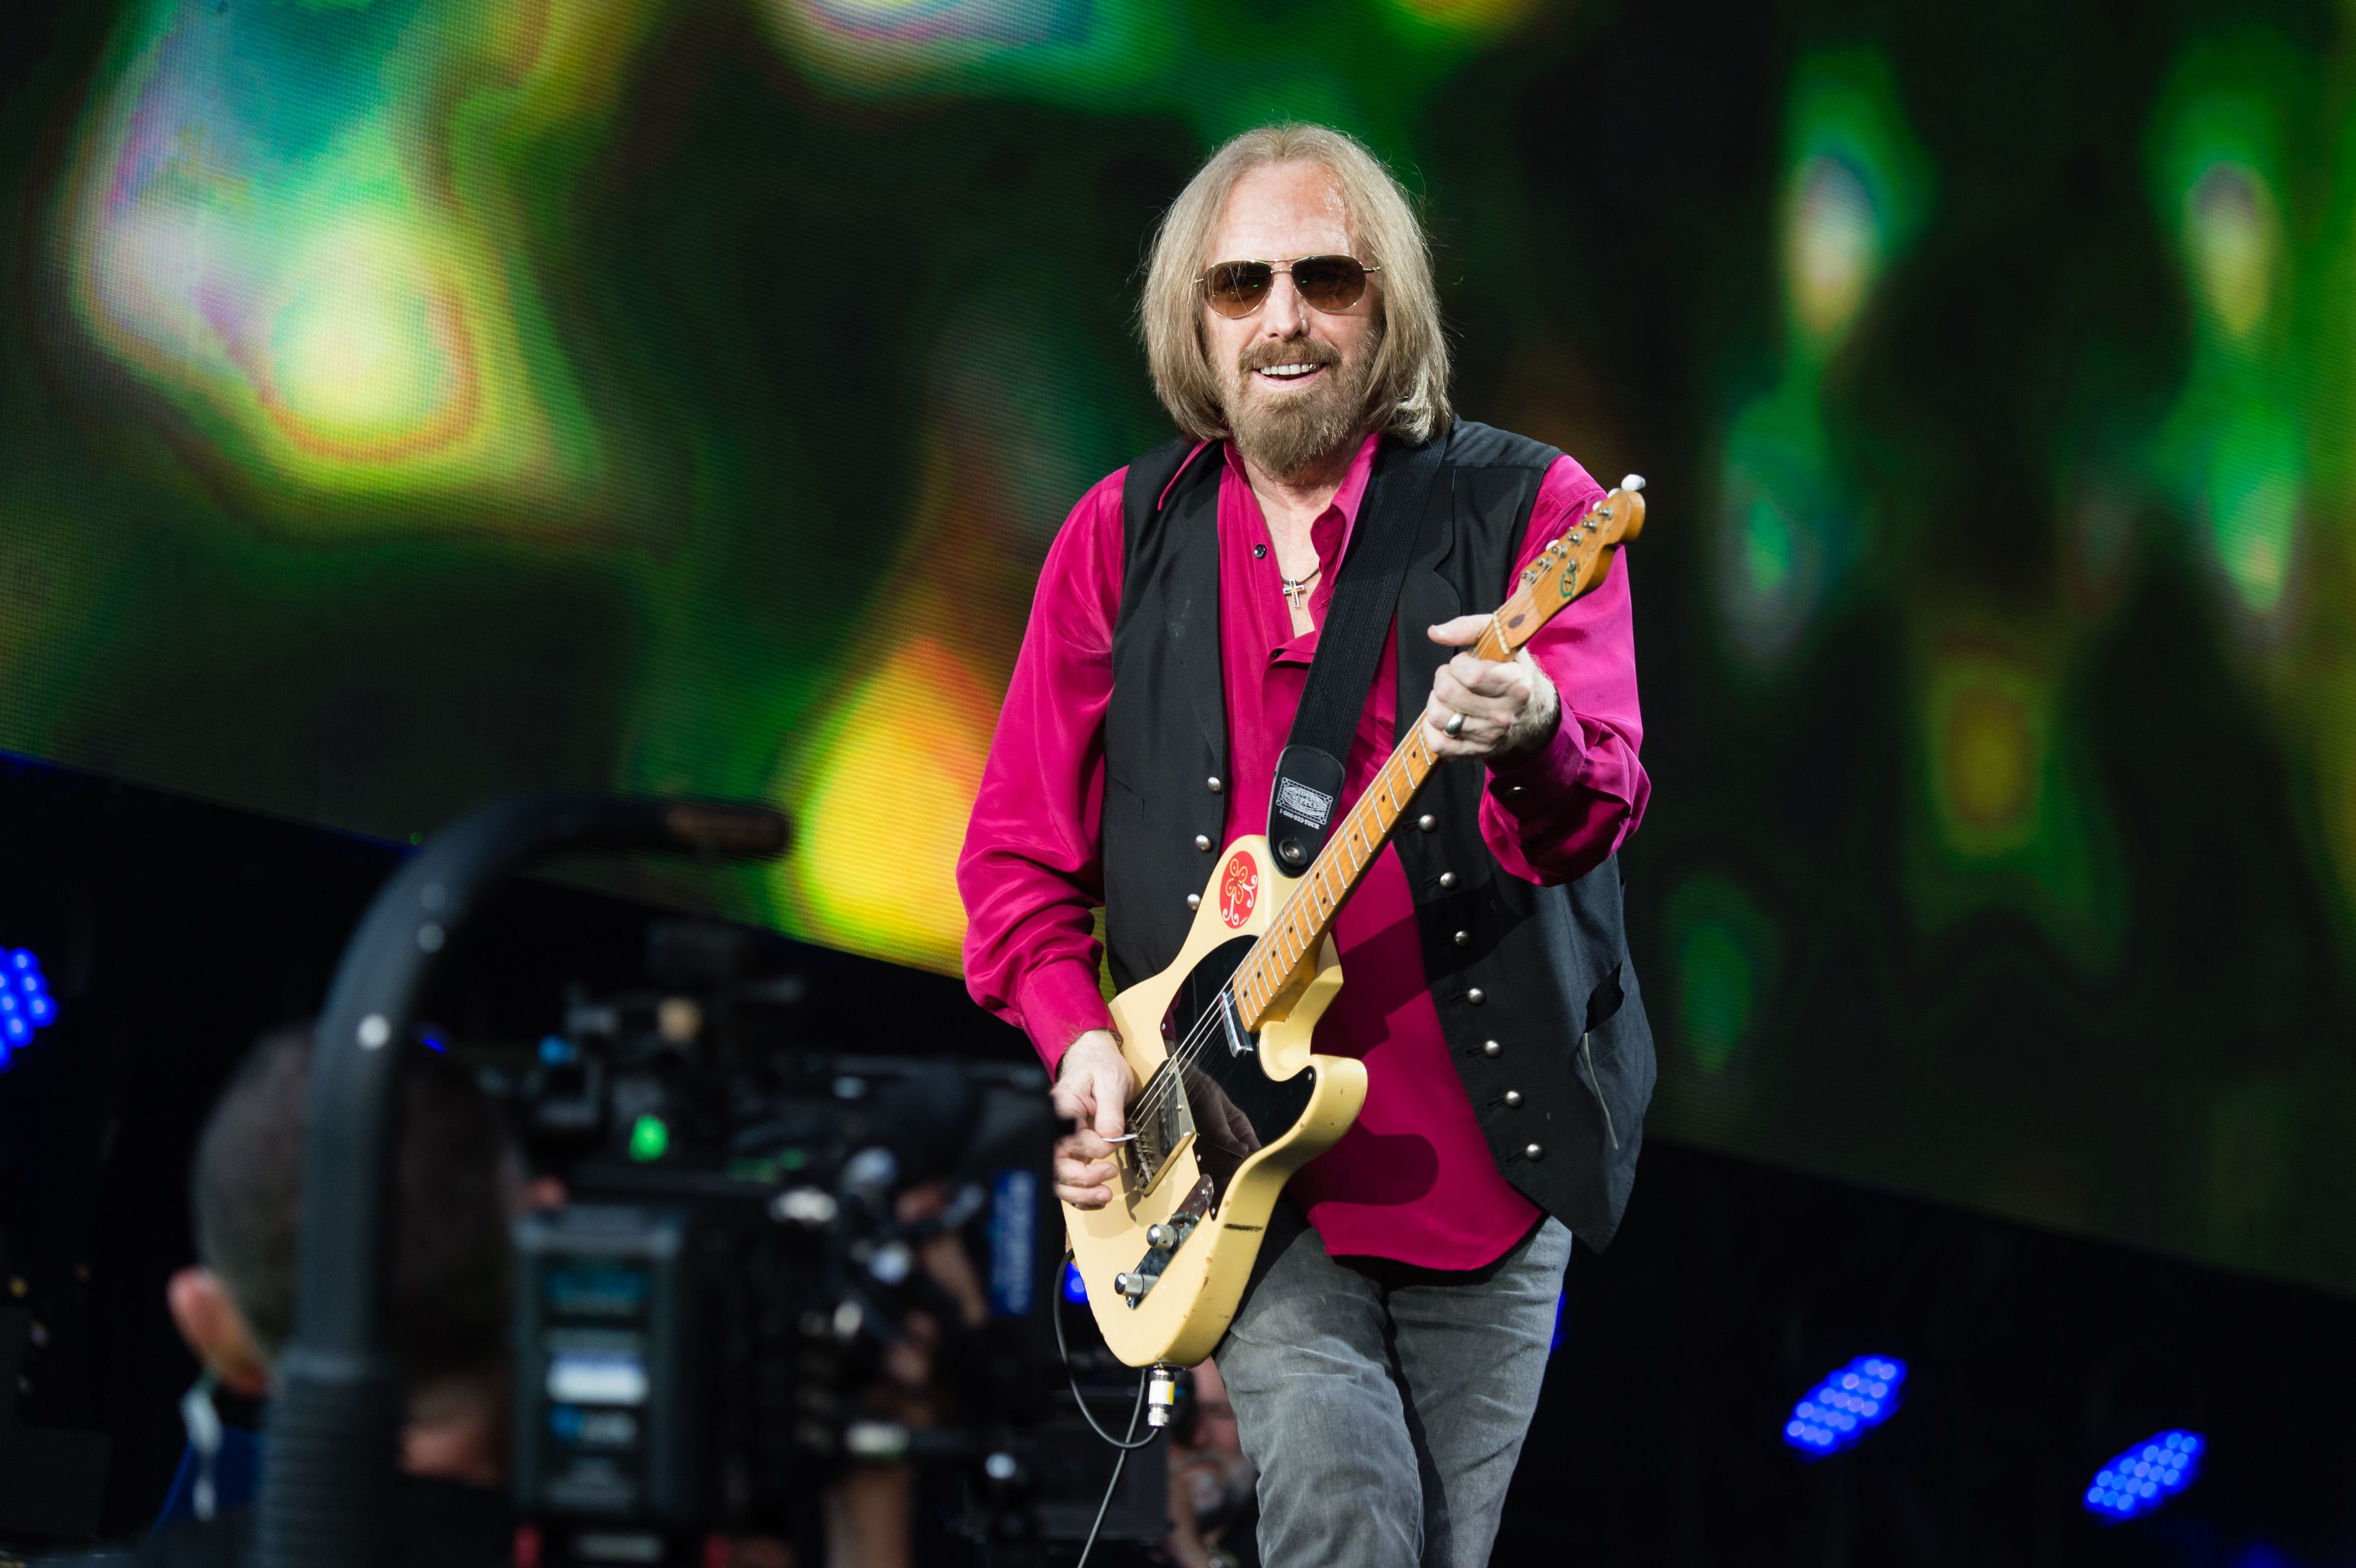 Rocker Tom Petty, 66, dies after being removed from life support